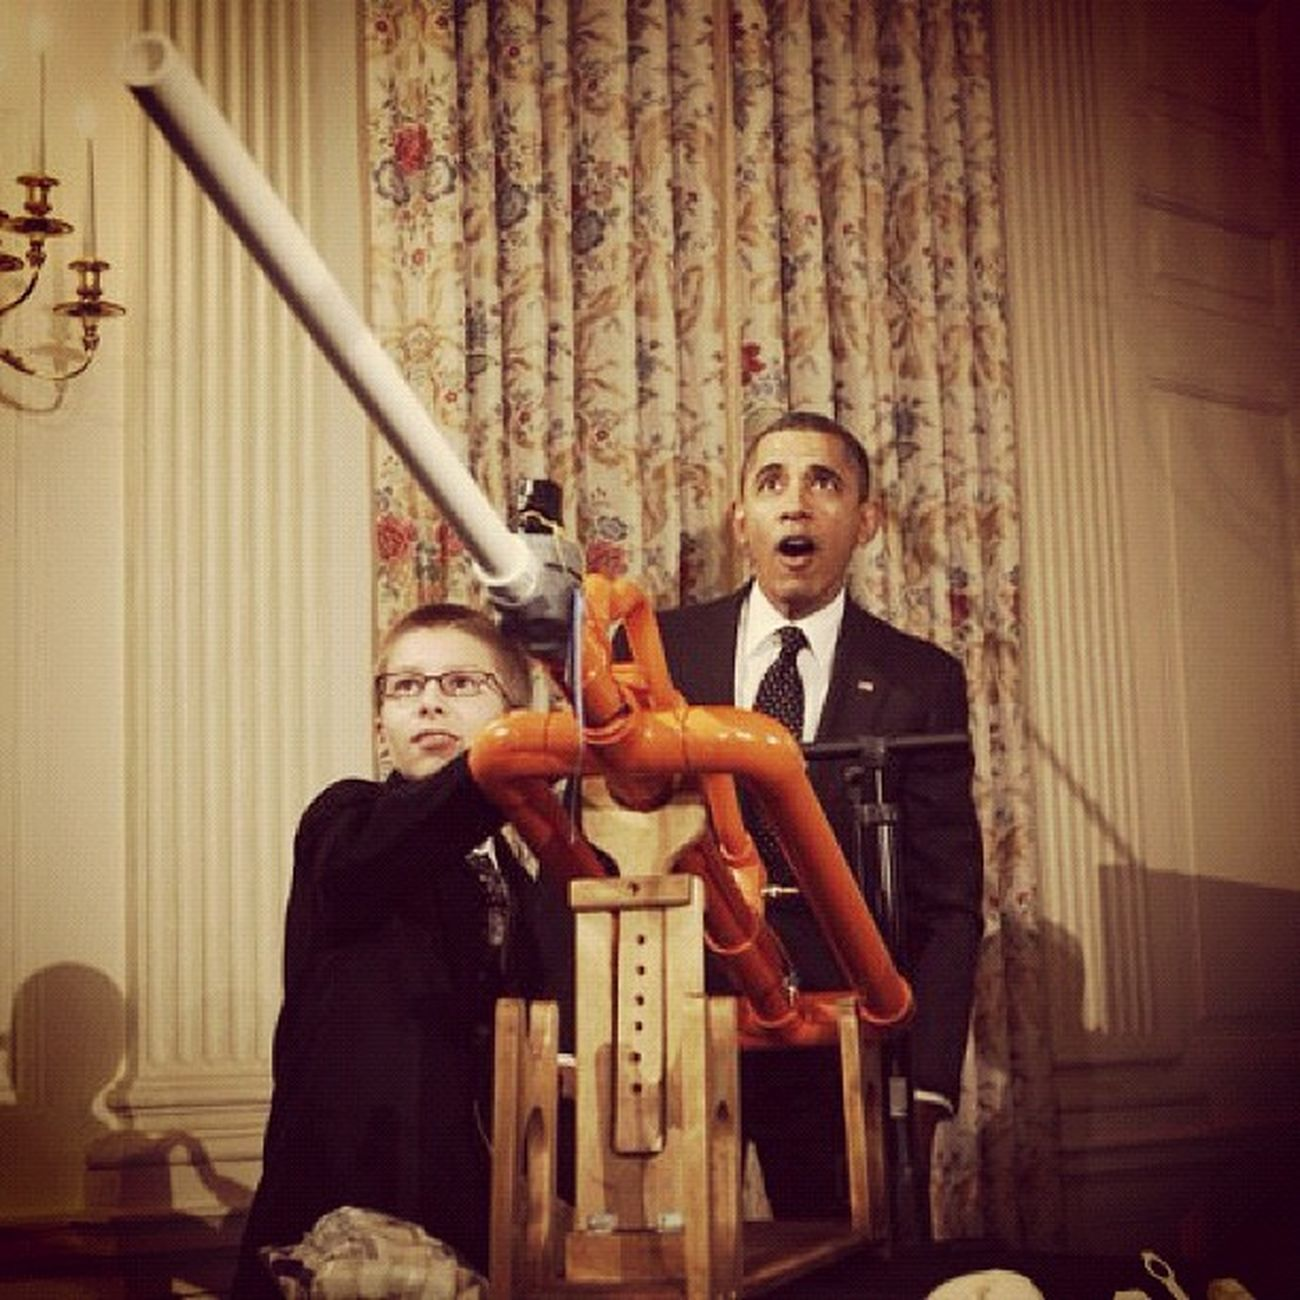 I love this. Science POTUS President Instagood Whitehouse Barackobama Instaclassic Unitedstates Kid Classic USA Excited Surprise Obama Project Washington